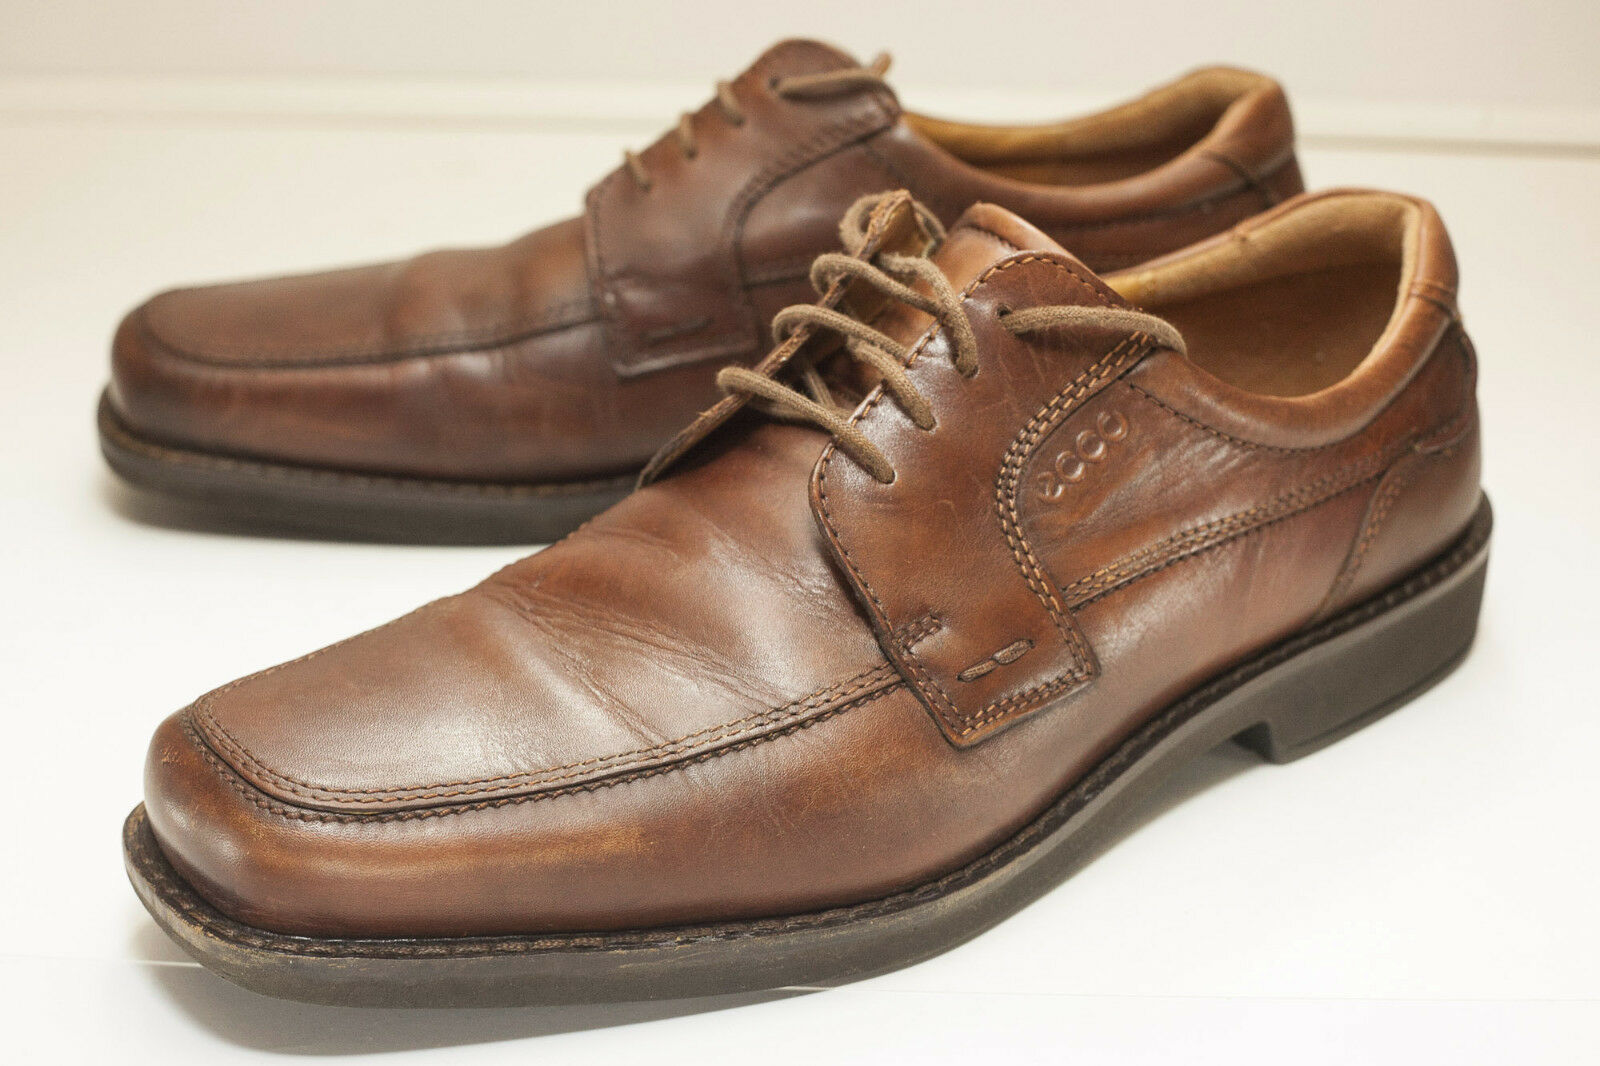 ECCO Size 13 to 13.5 Brown Men's Seattle Apron-Toe Derby shoes Extra Width